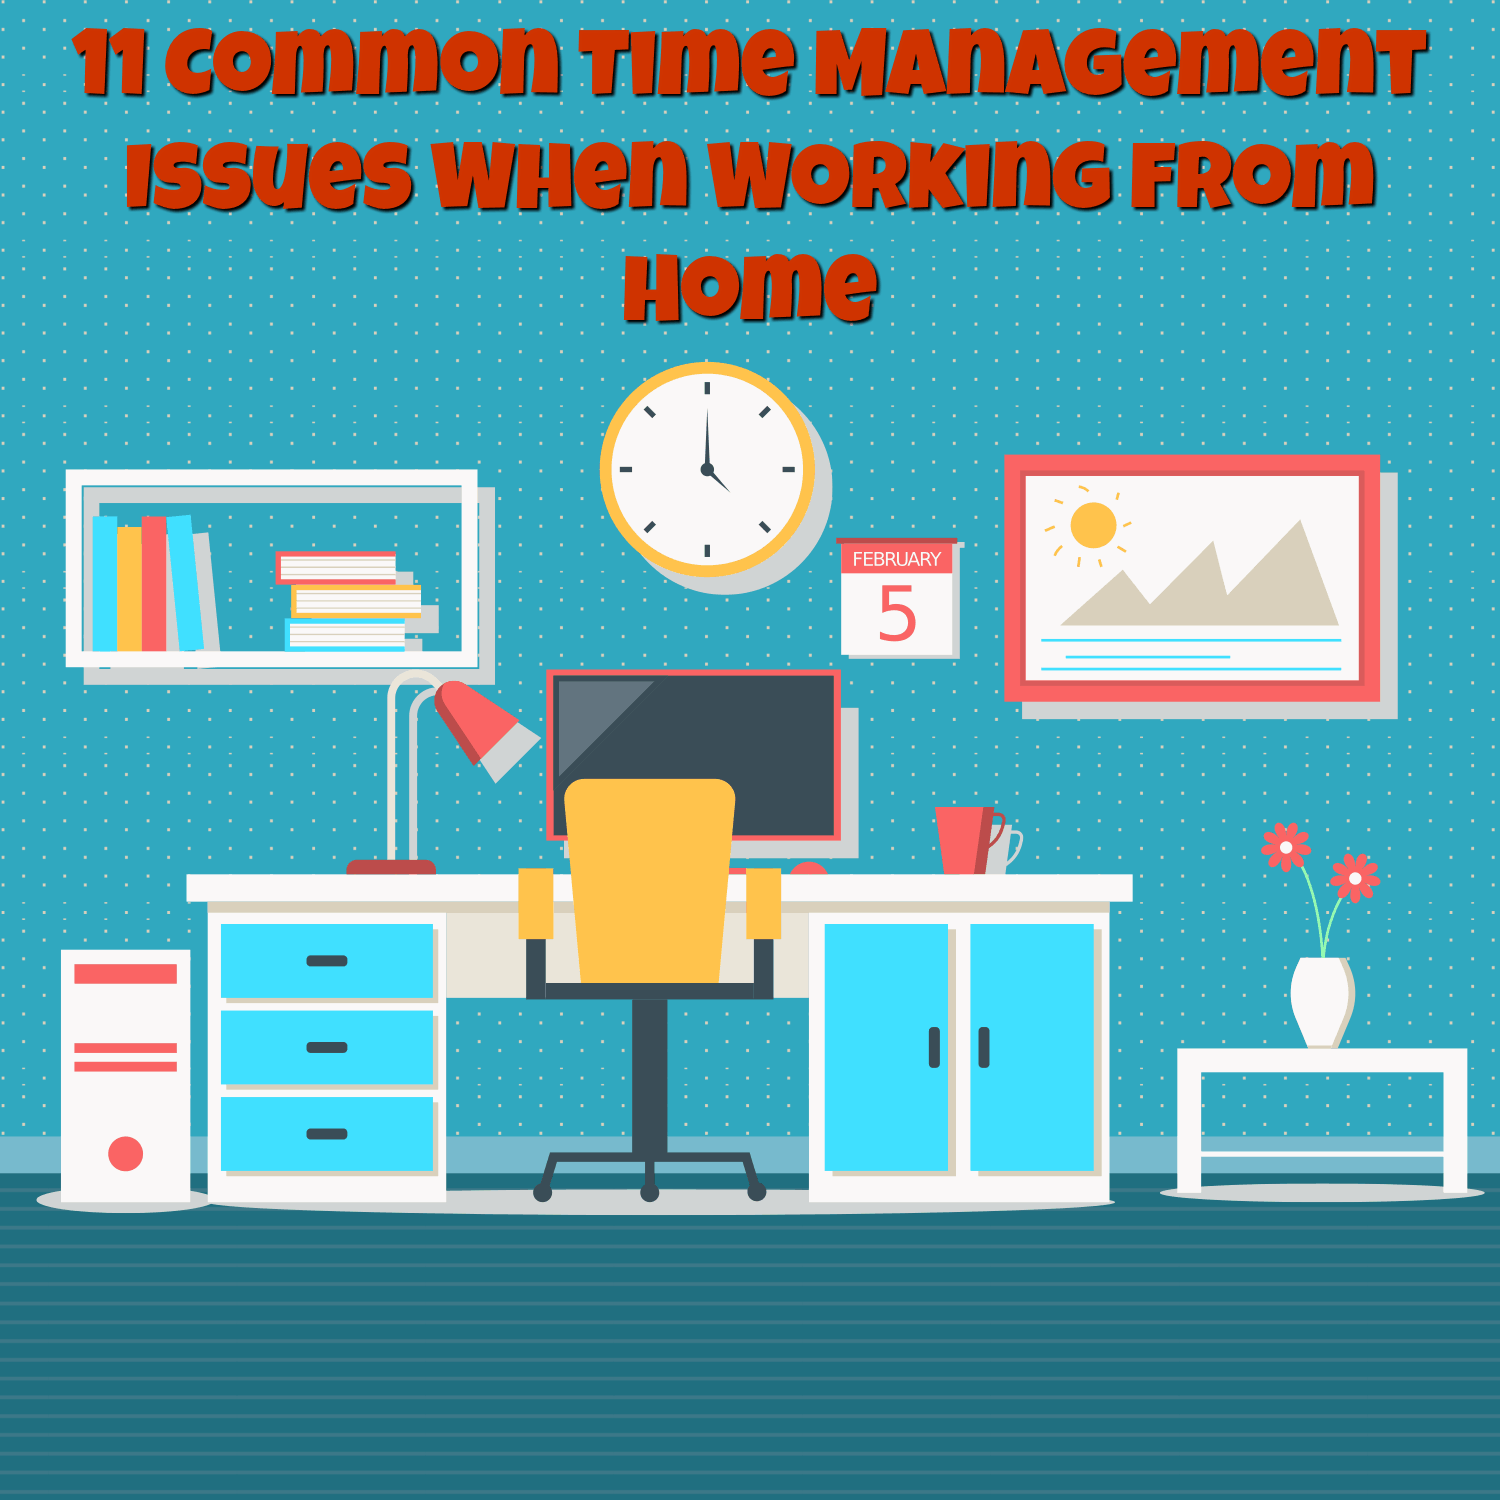 11 Common Time Management Issues When Working From Home